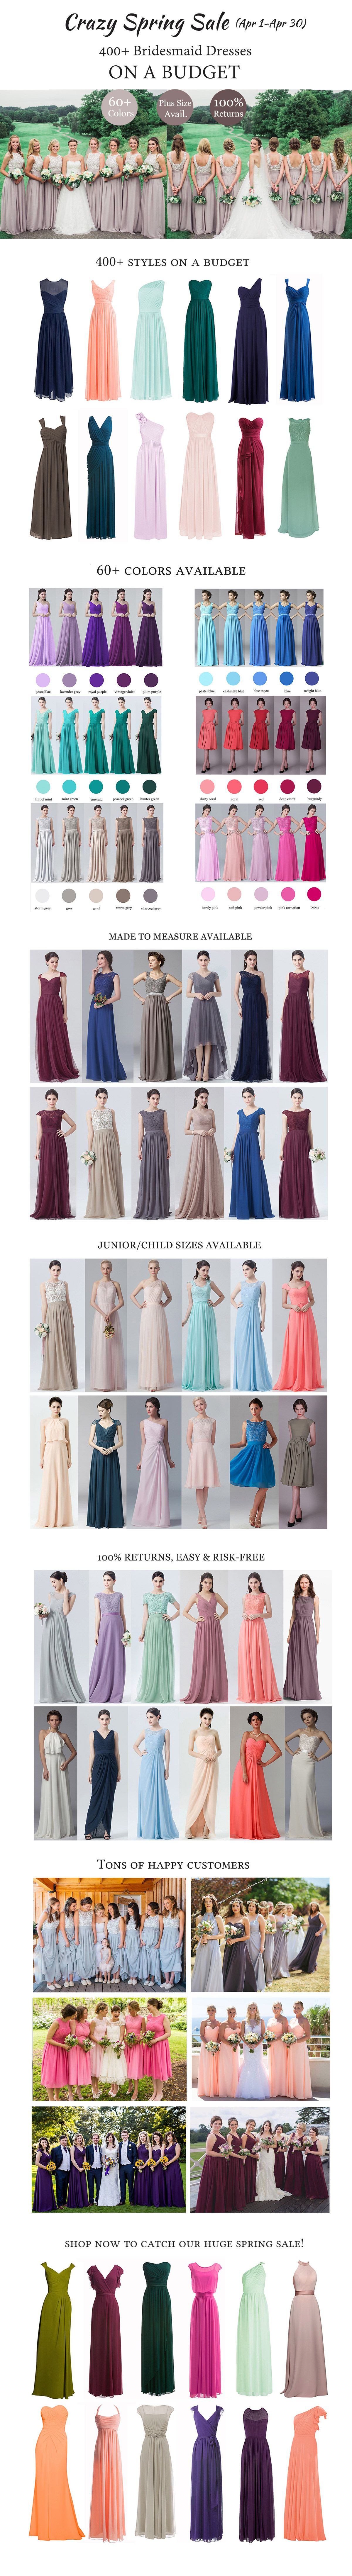 Now through apr crazy spring sale on all fhfh bridesmaid dresses